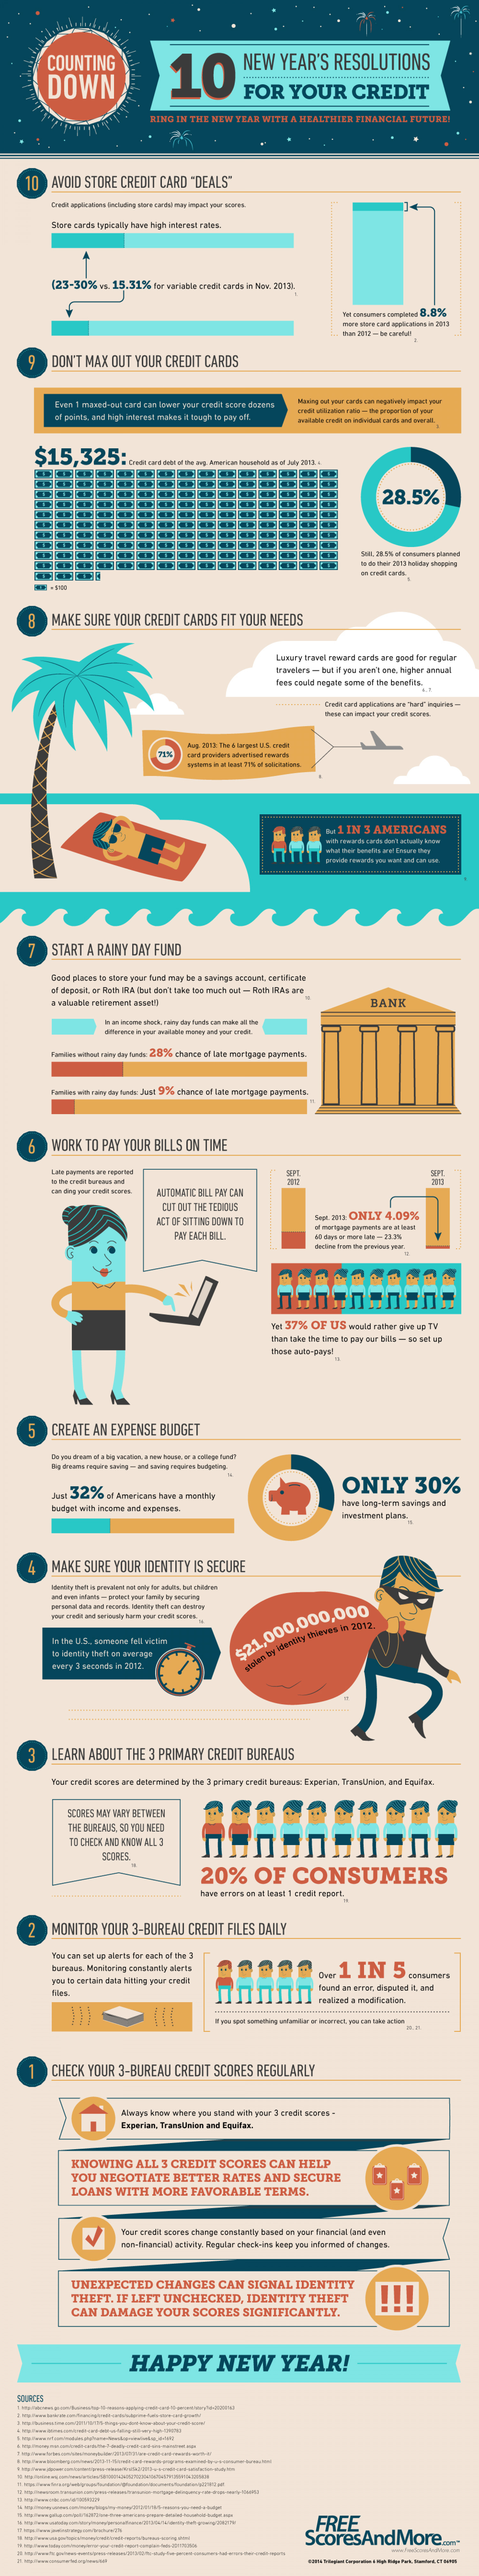 10 New Year's Resolutions For Your Credit  Infographic